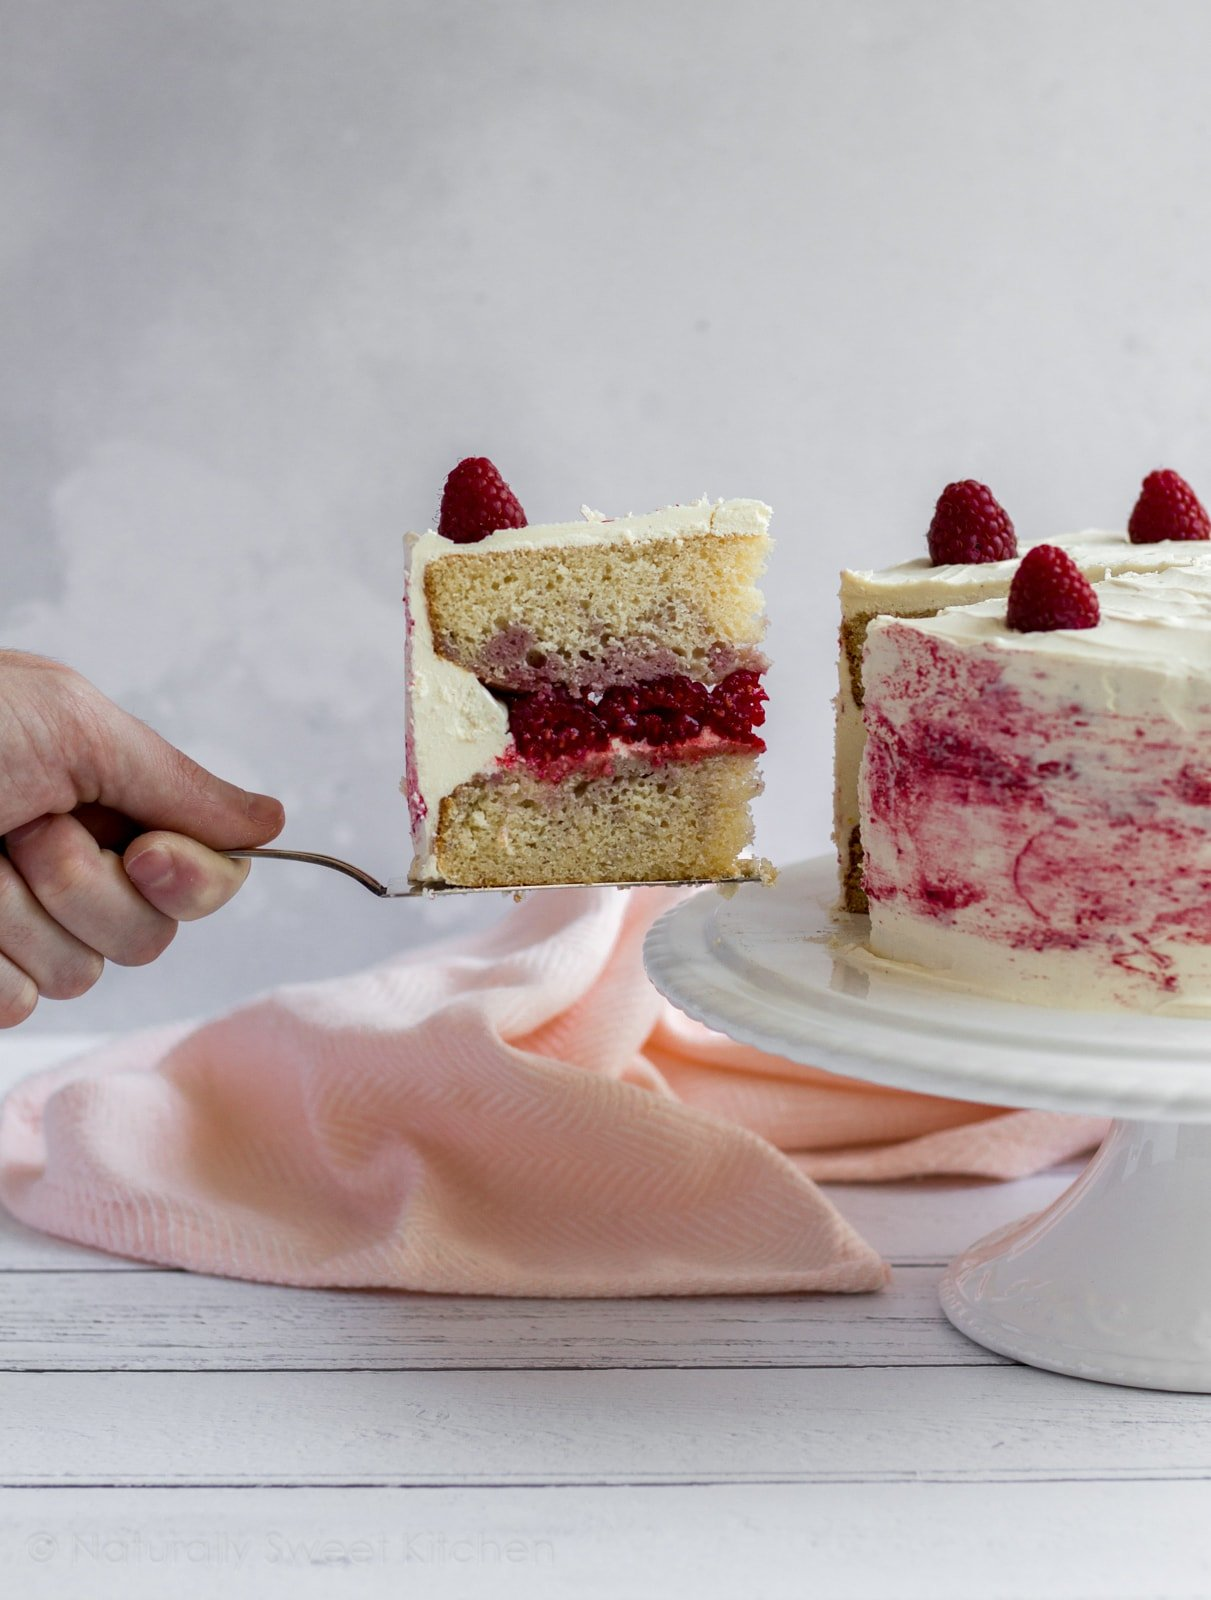 This modern, elegant White Chocolate Raspberry Ripple Cake features velvety white chocolate buttercream, raspberry swirl vanilla cake and fresh raspberries. #cake #raspberry #refinedsugarfree